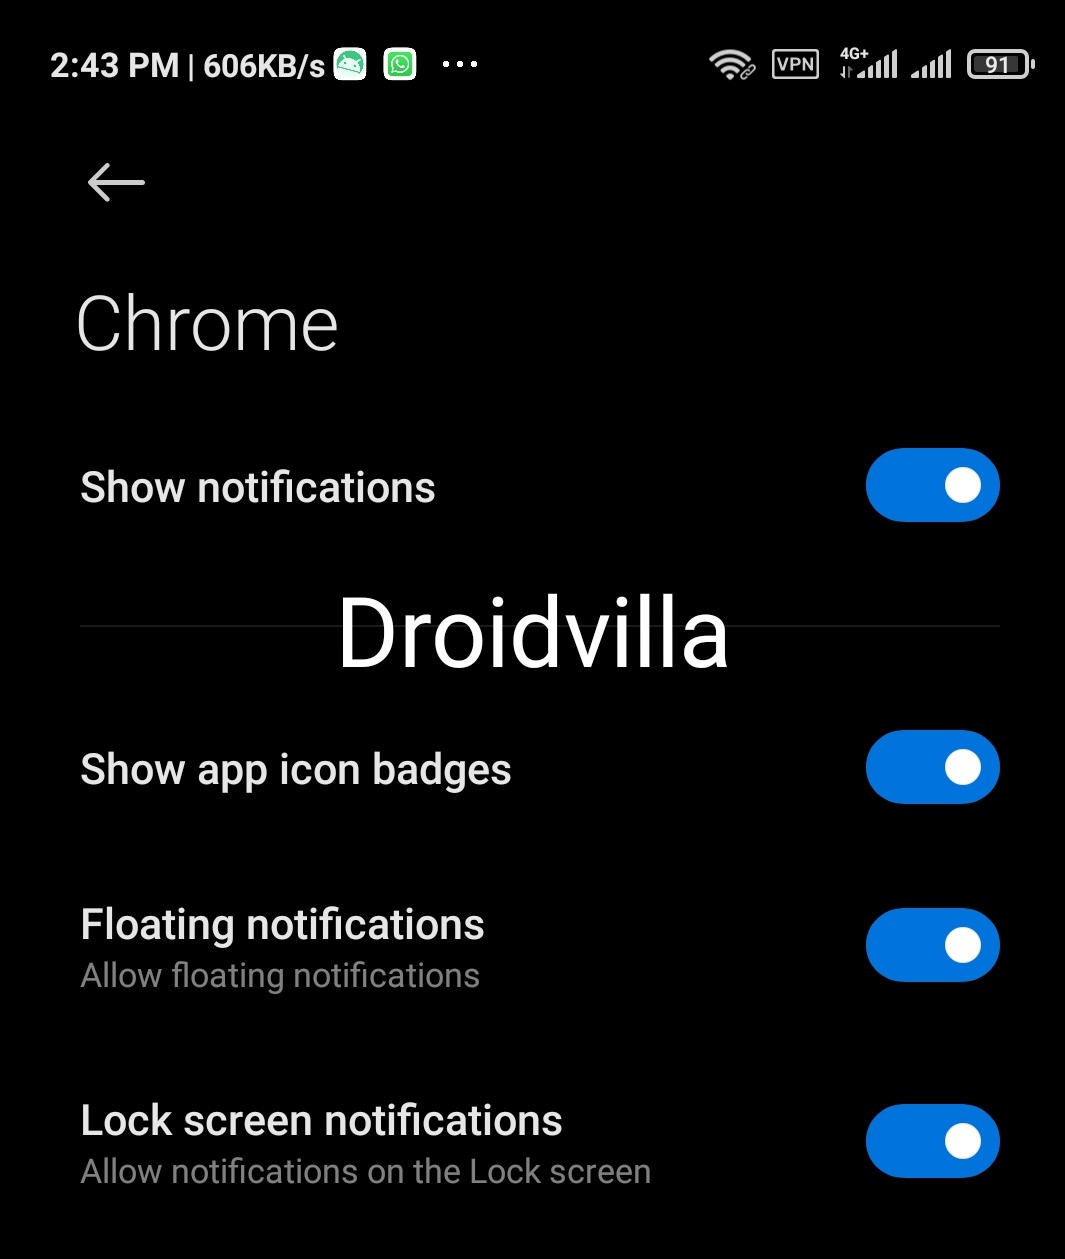 how-to-unsubscribe-from-annoying-website-notifications-on-chrome-browser-droidvilla-technology-solution-android-apk-phone-reviews-technology-updates-tipstricks